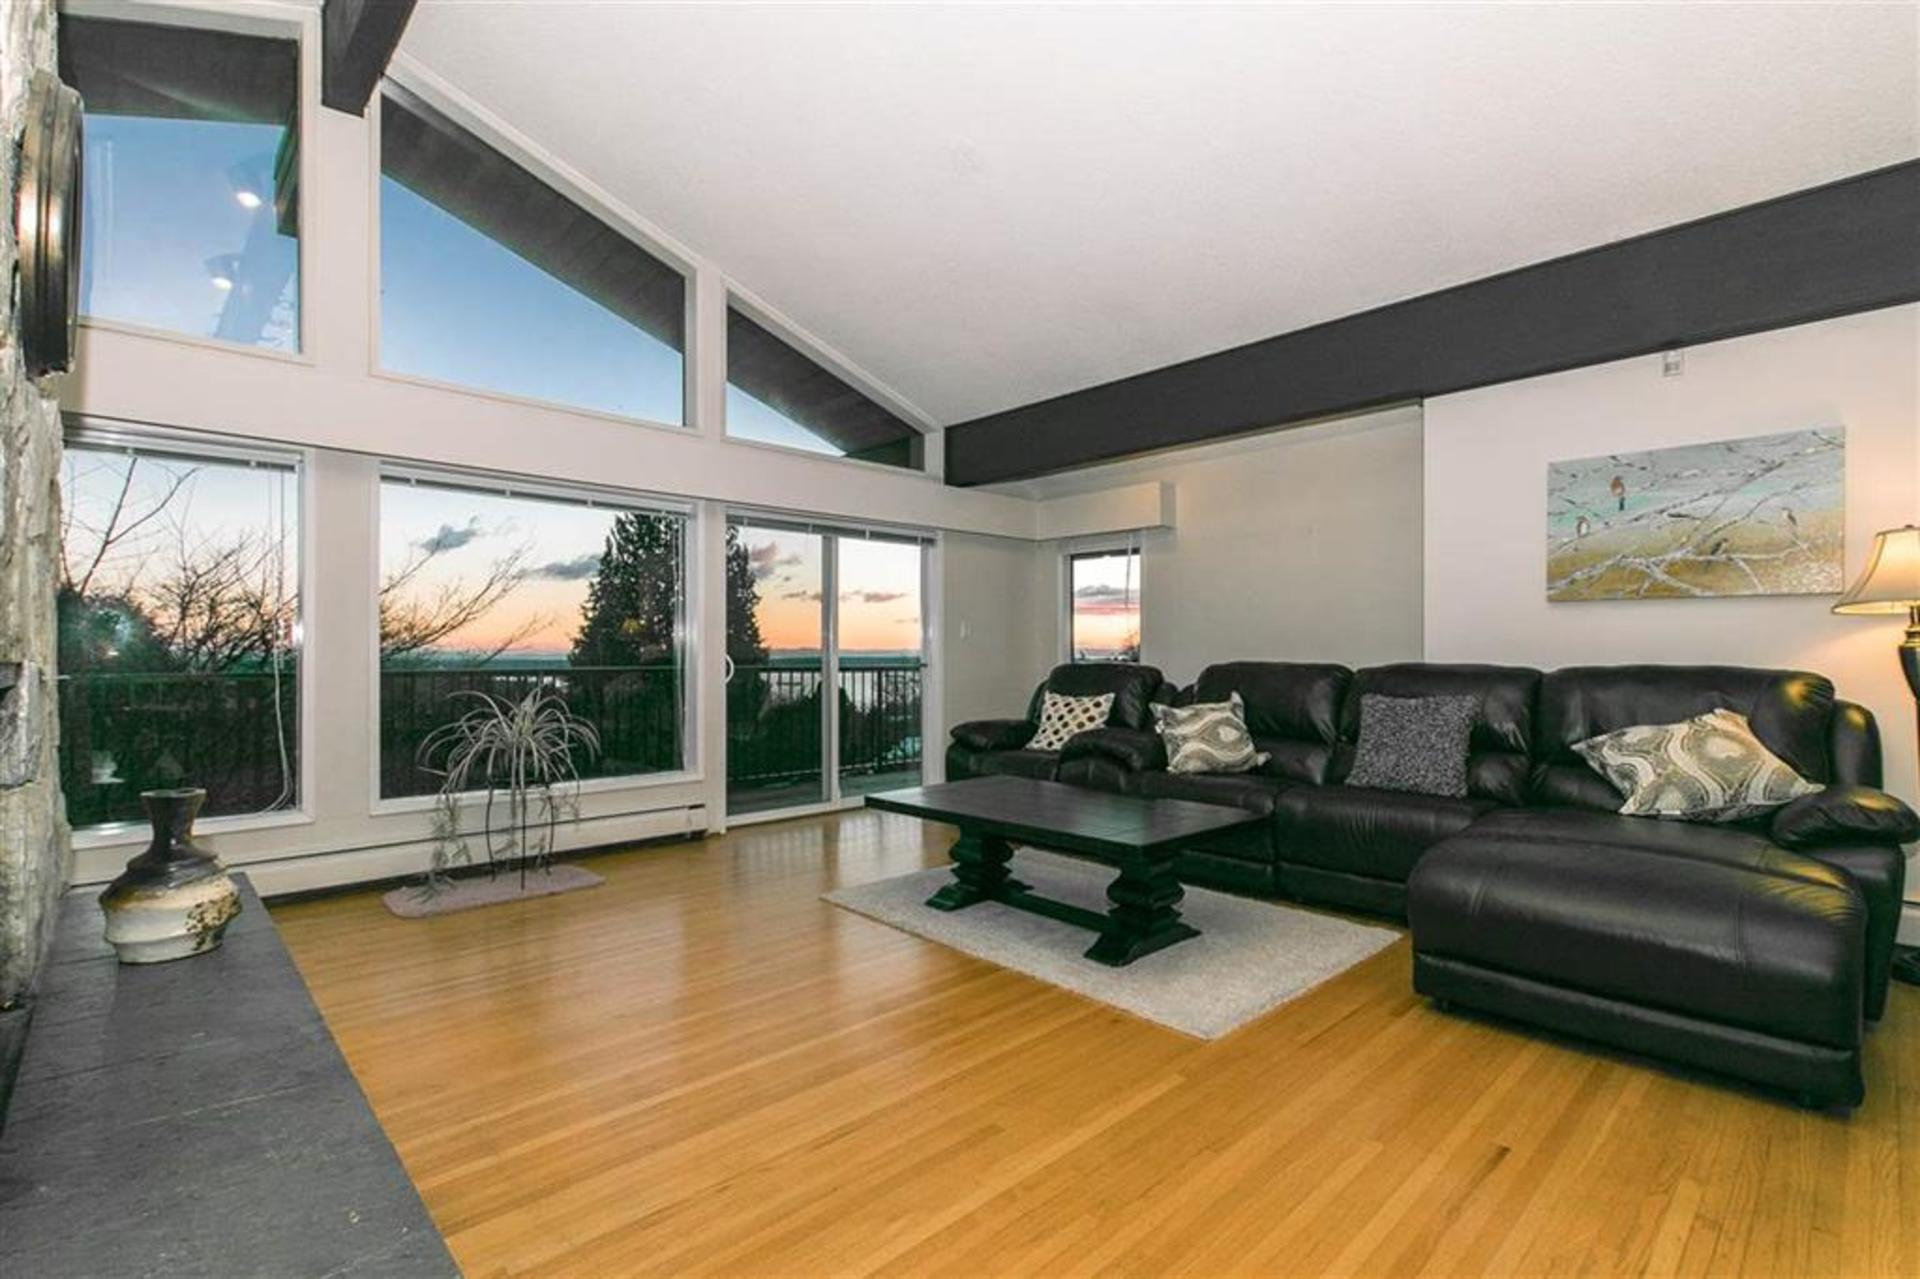 262178191-5 at 1257 Chartwell Place, Chartwell, West Vancouver